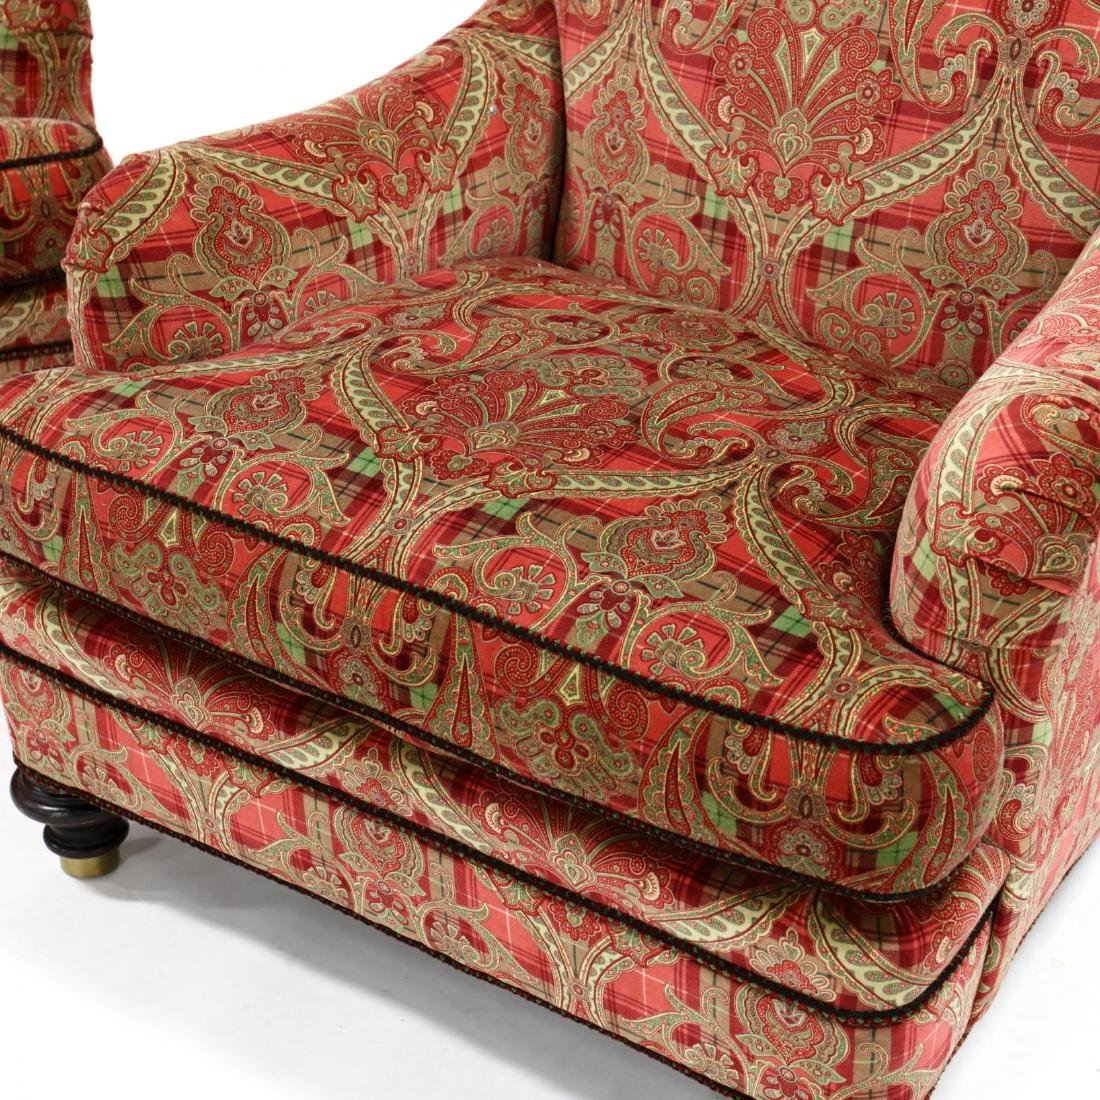 Hickory Chair Co., Pair of Scalamandre Upholstered Club - 2